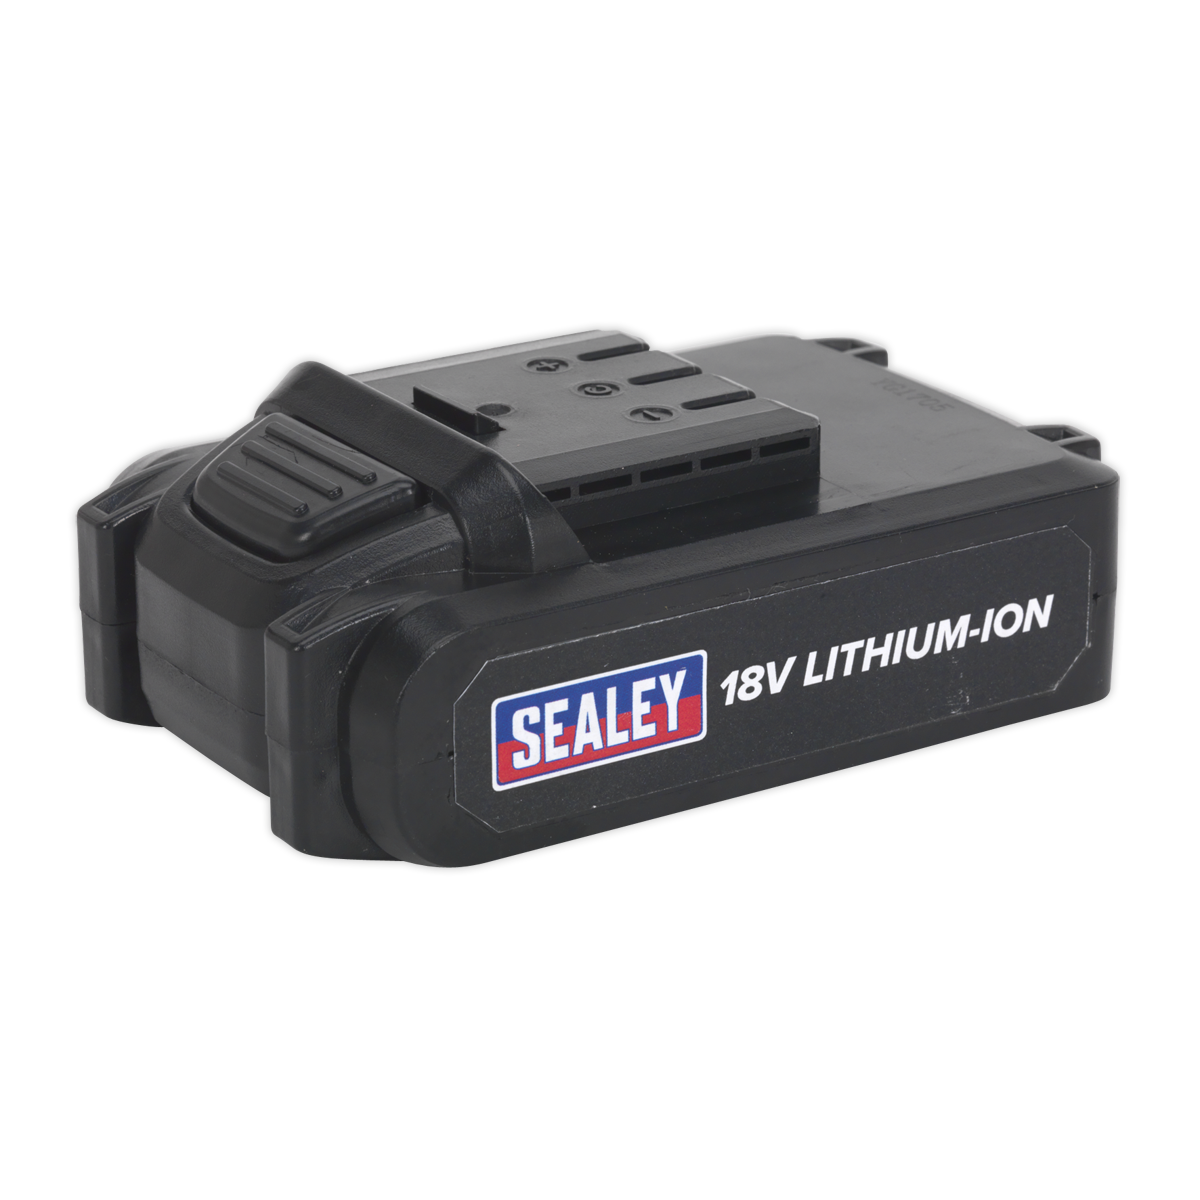 Power Tool Battery 18V 2Ah Lithium-ion for CPNG18V